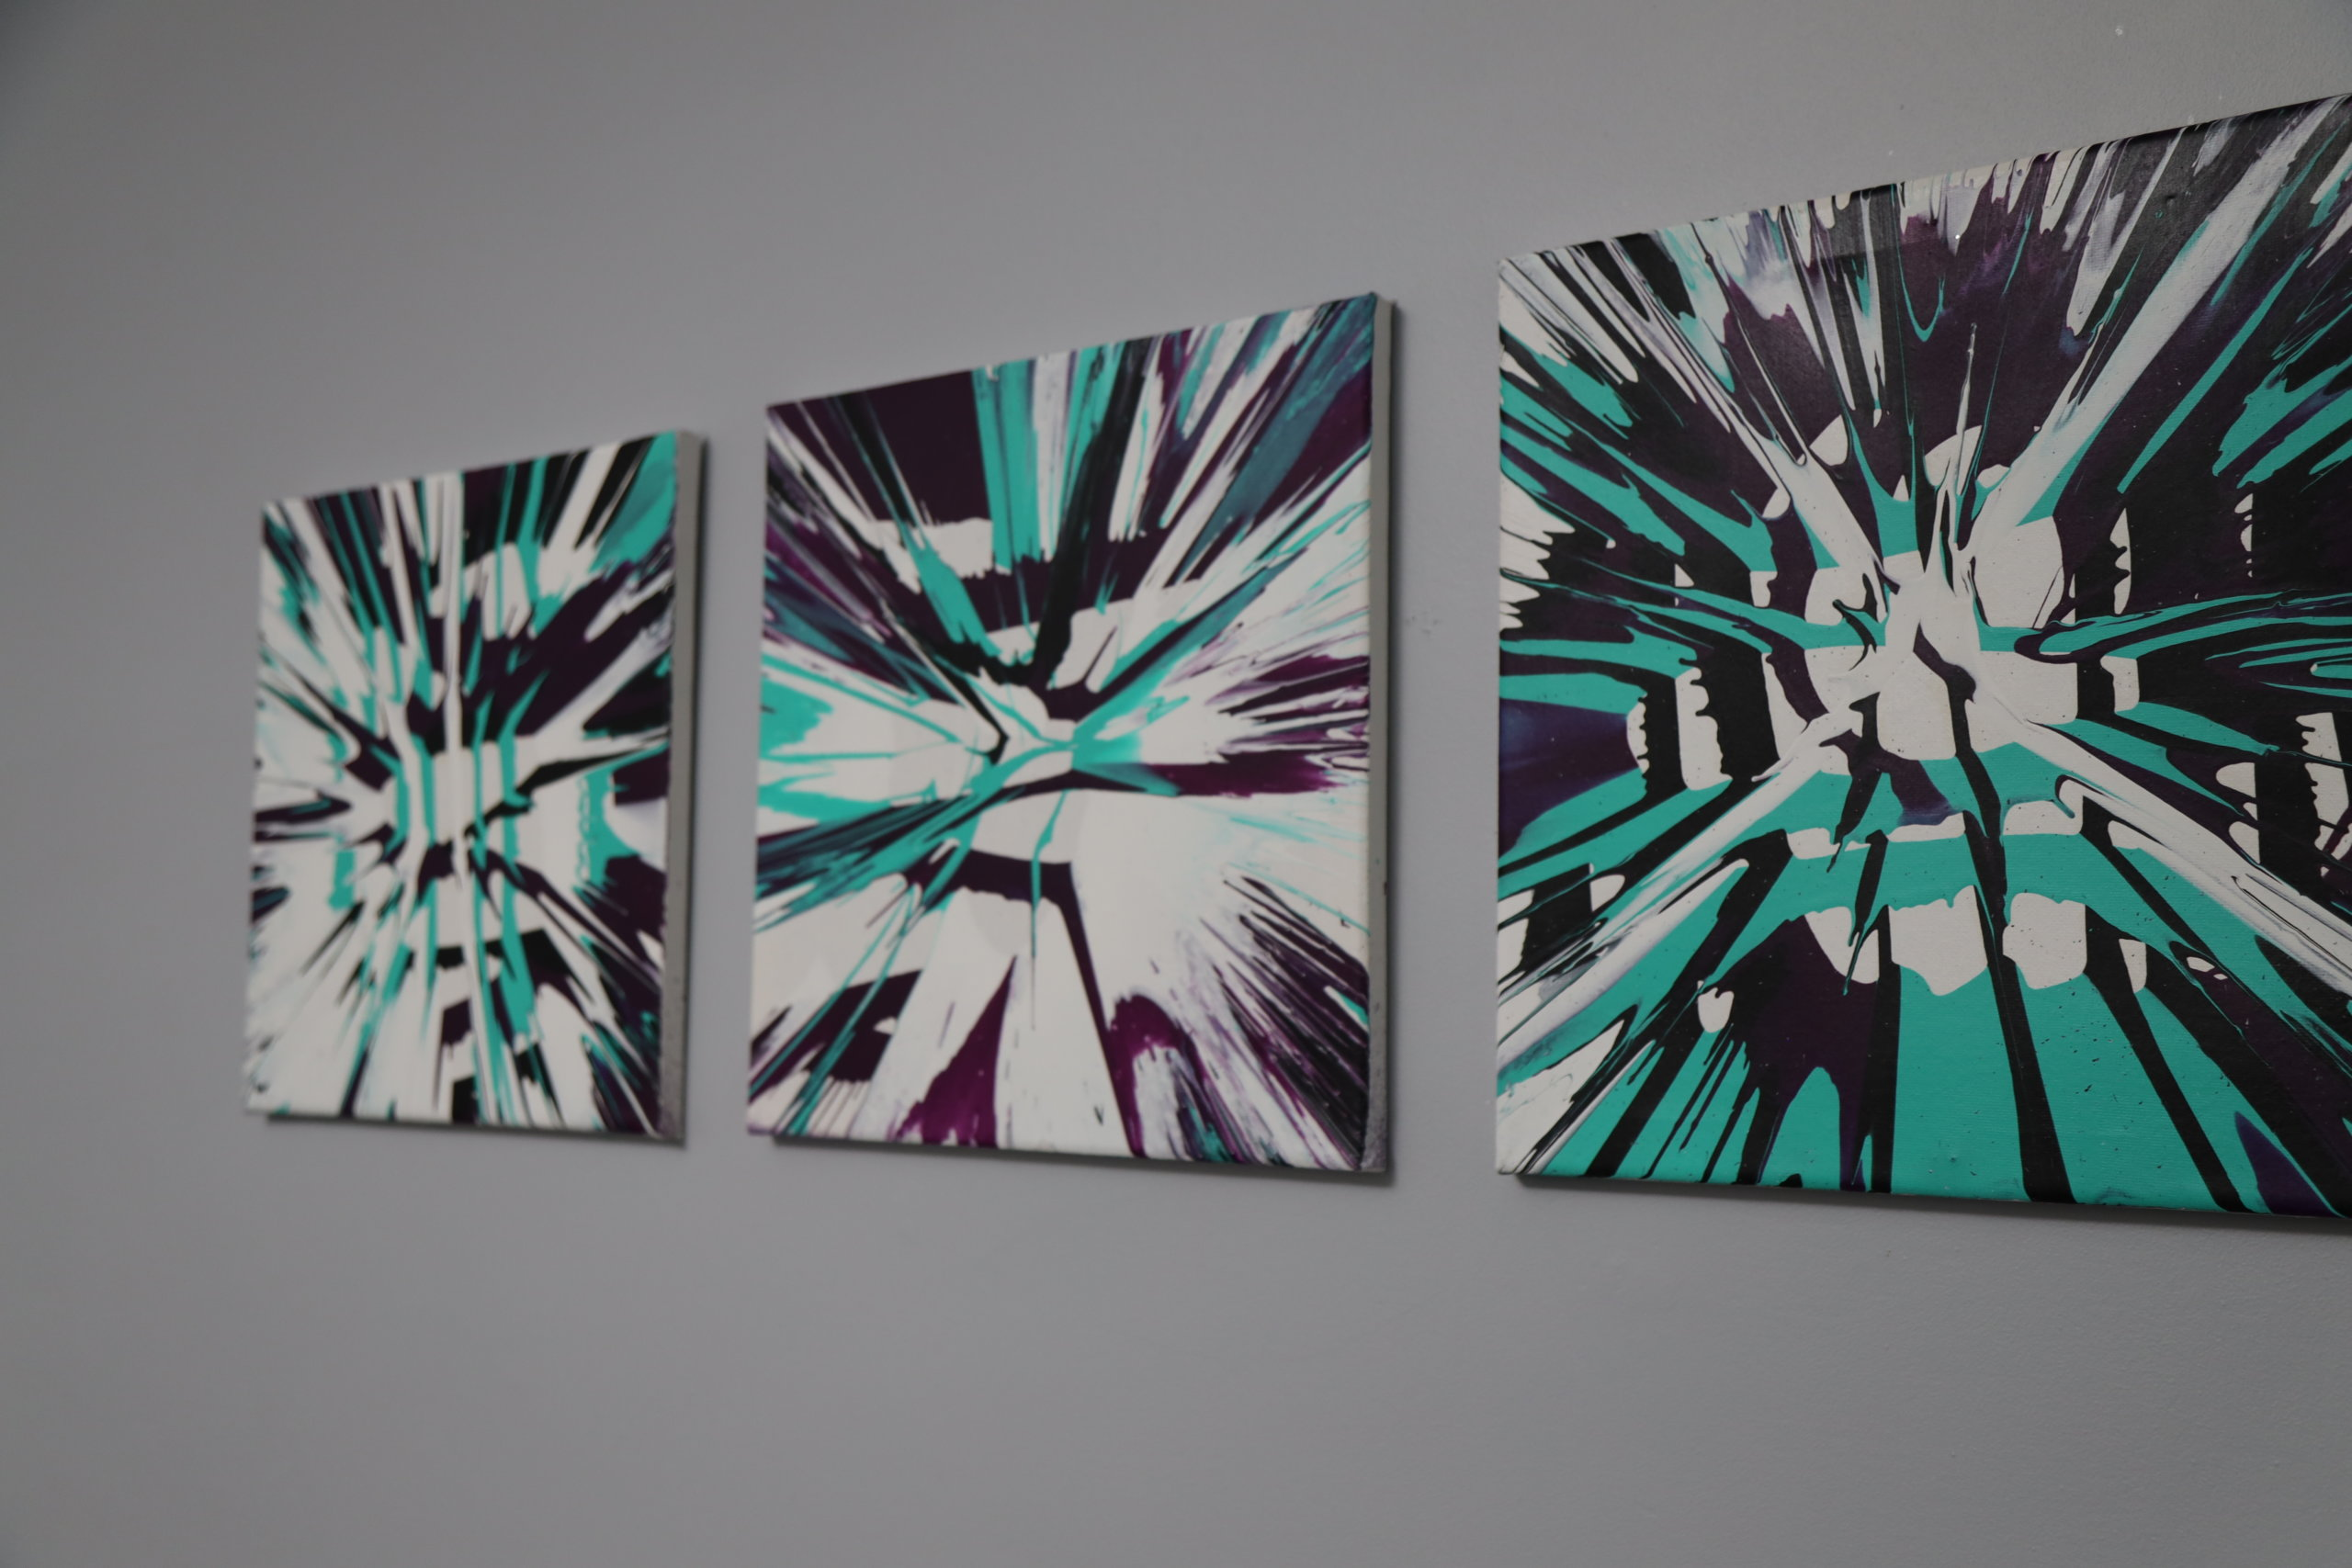 three completed spin art canvases hanging